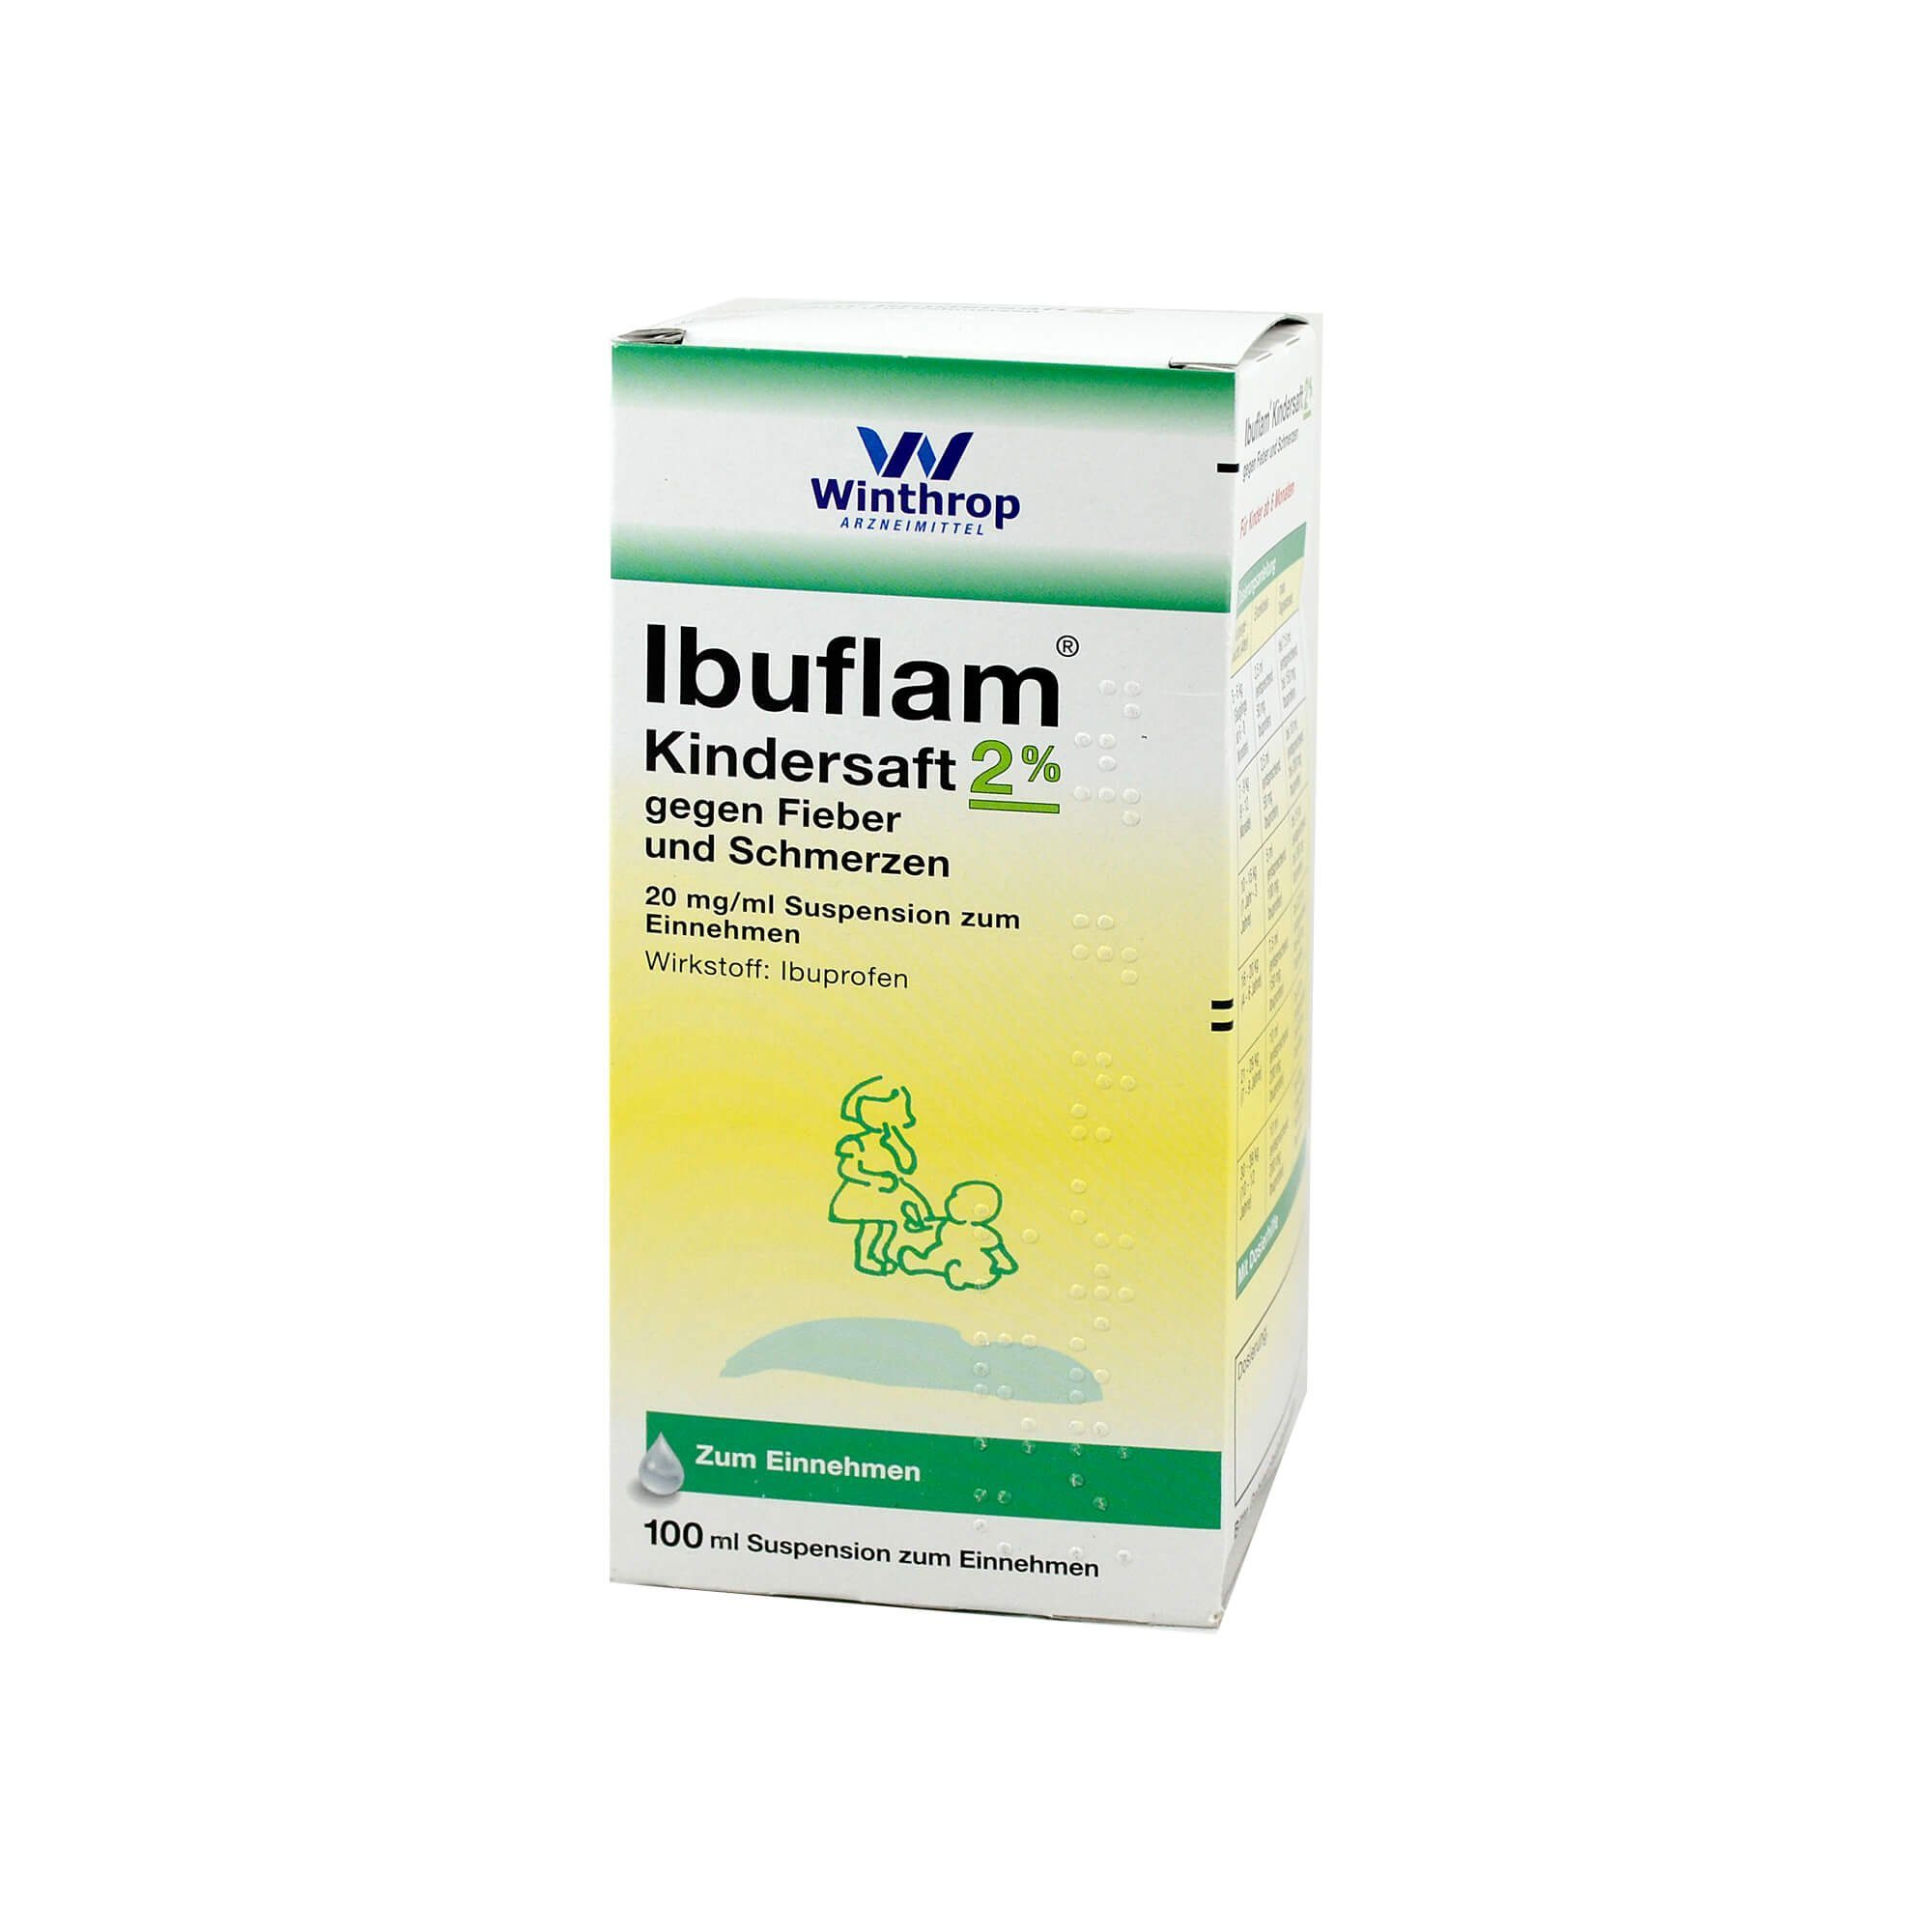 Ibuflam Kindersaft 2% , 100 ml